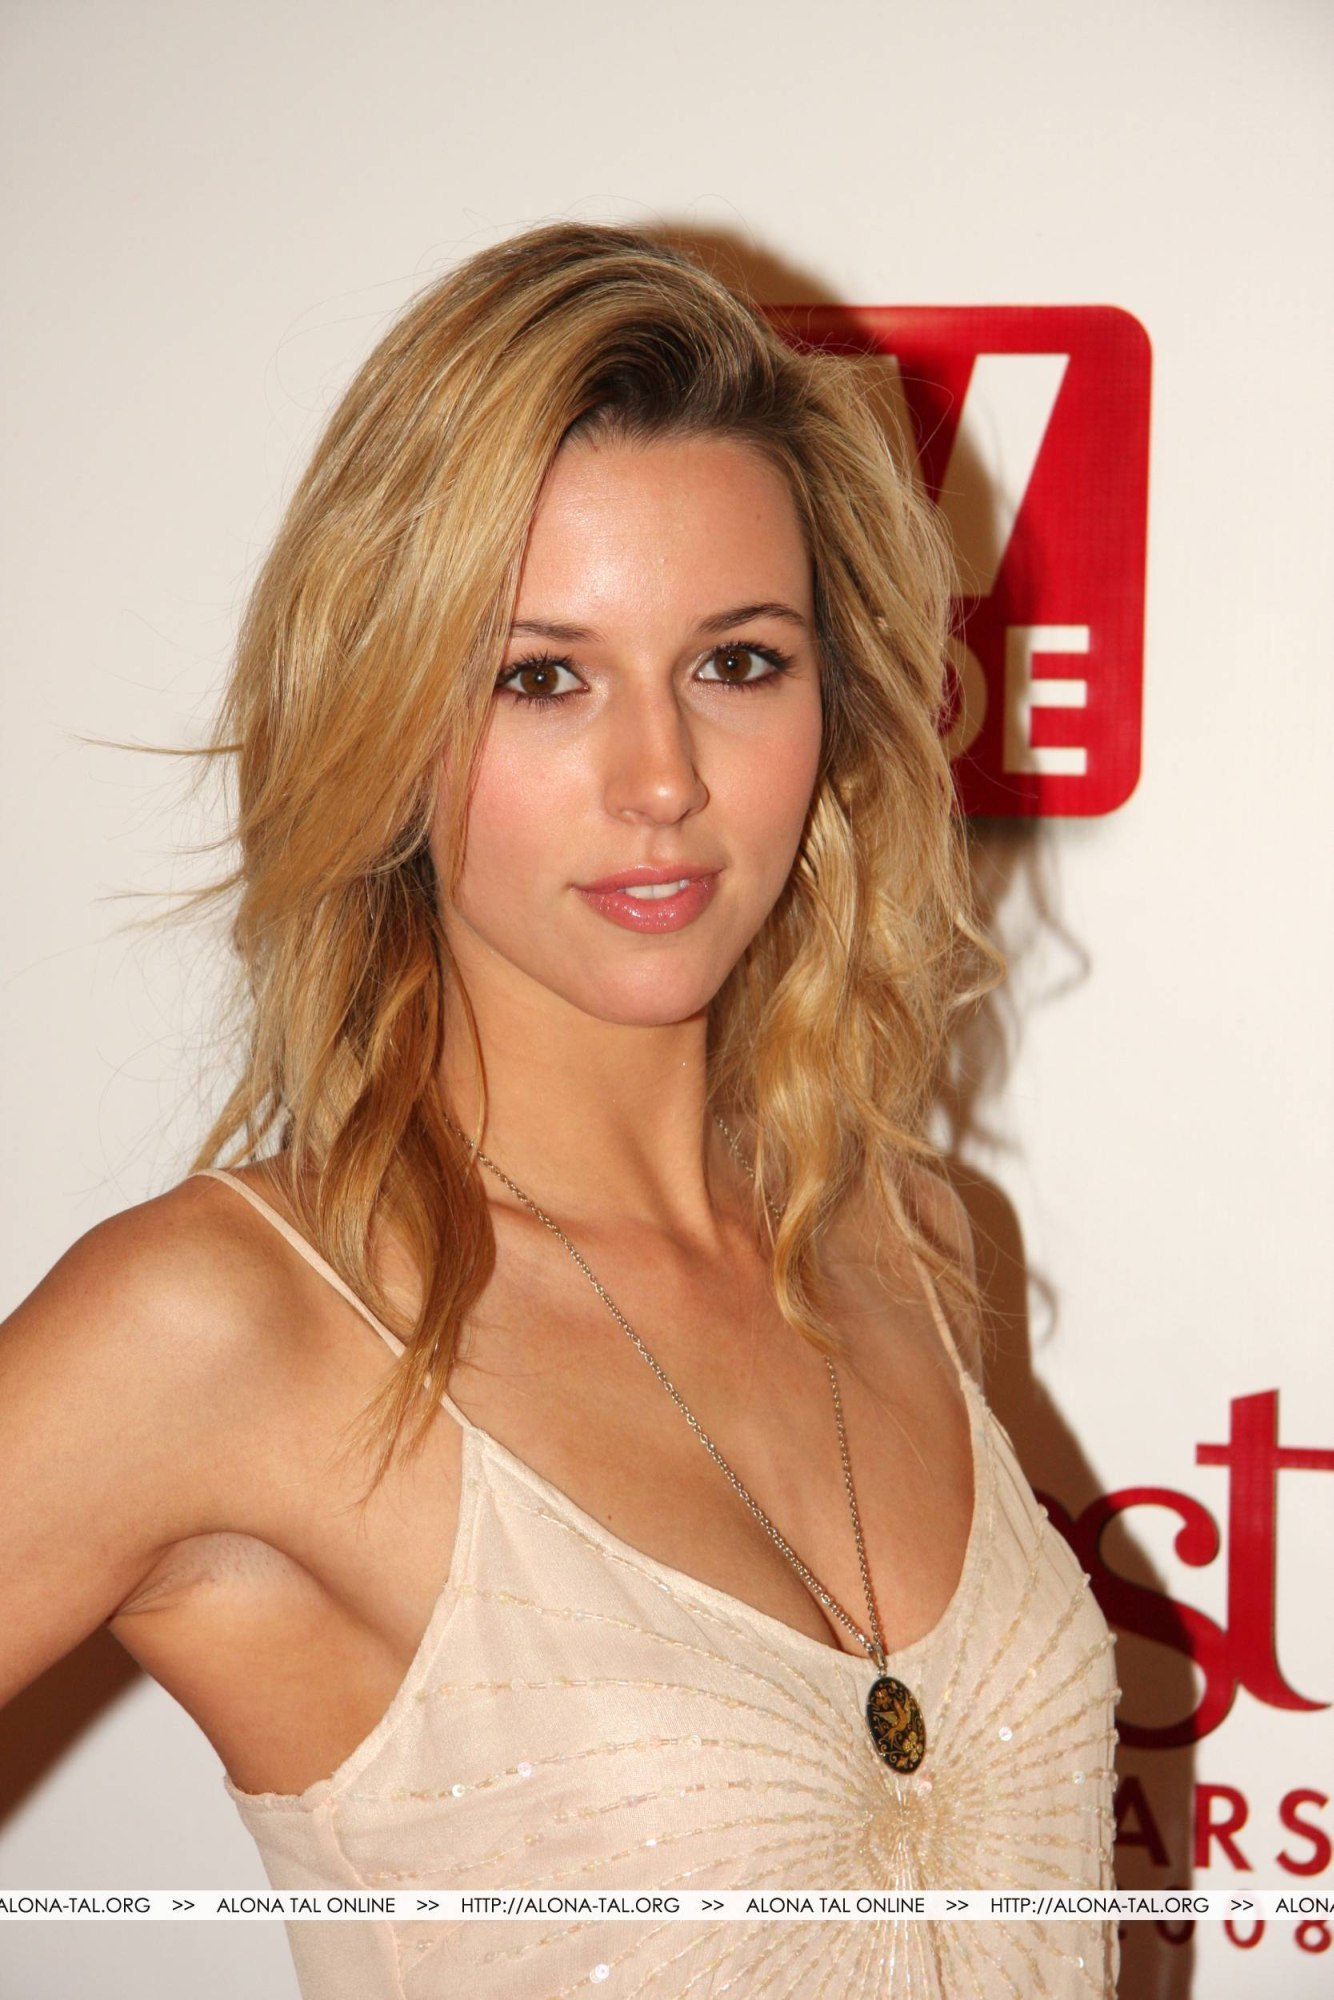 Alona Tal Photos nudes (59 images)